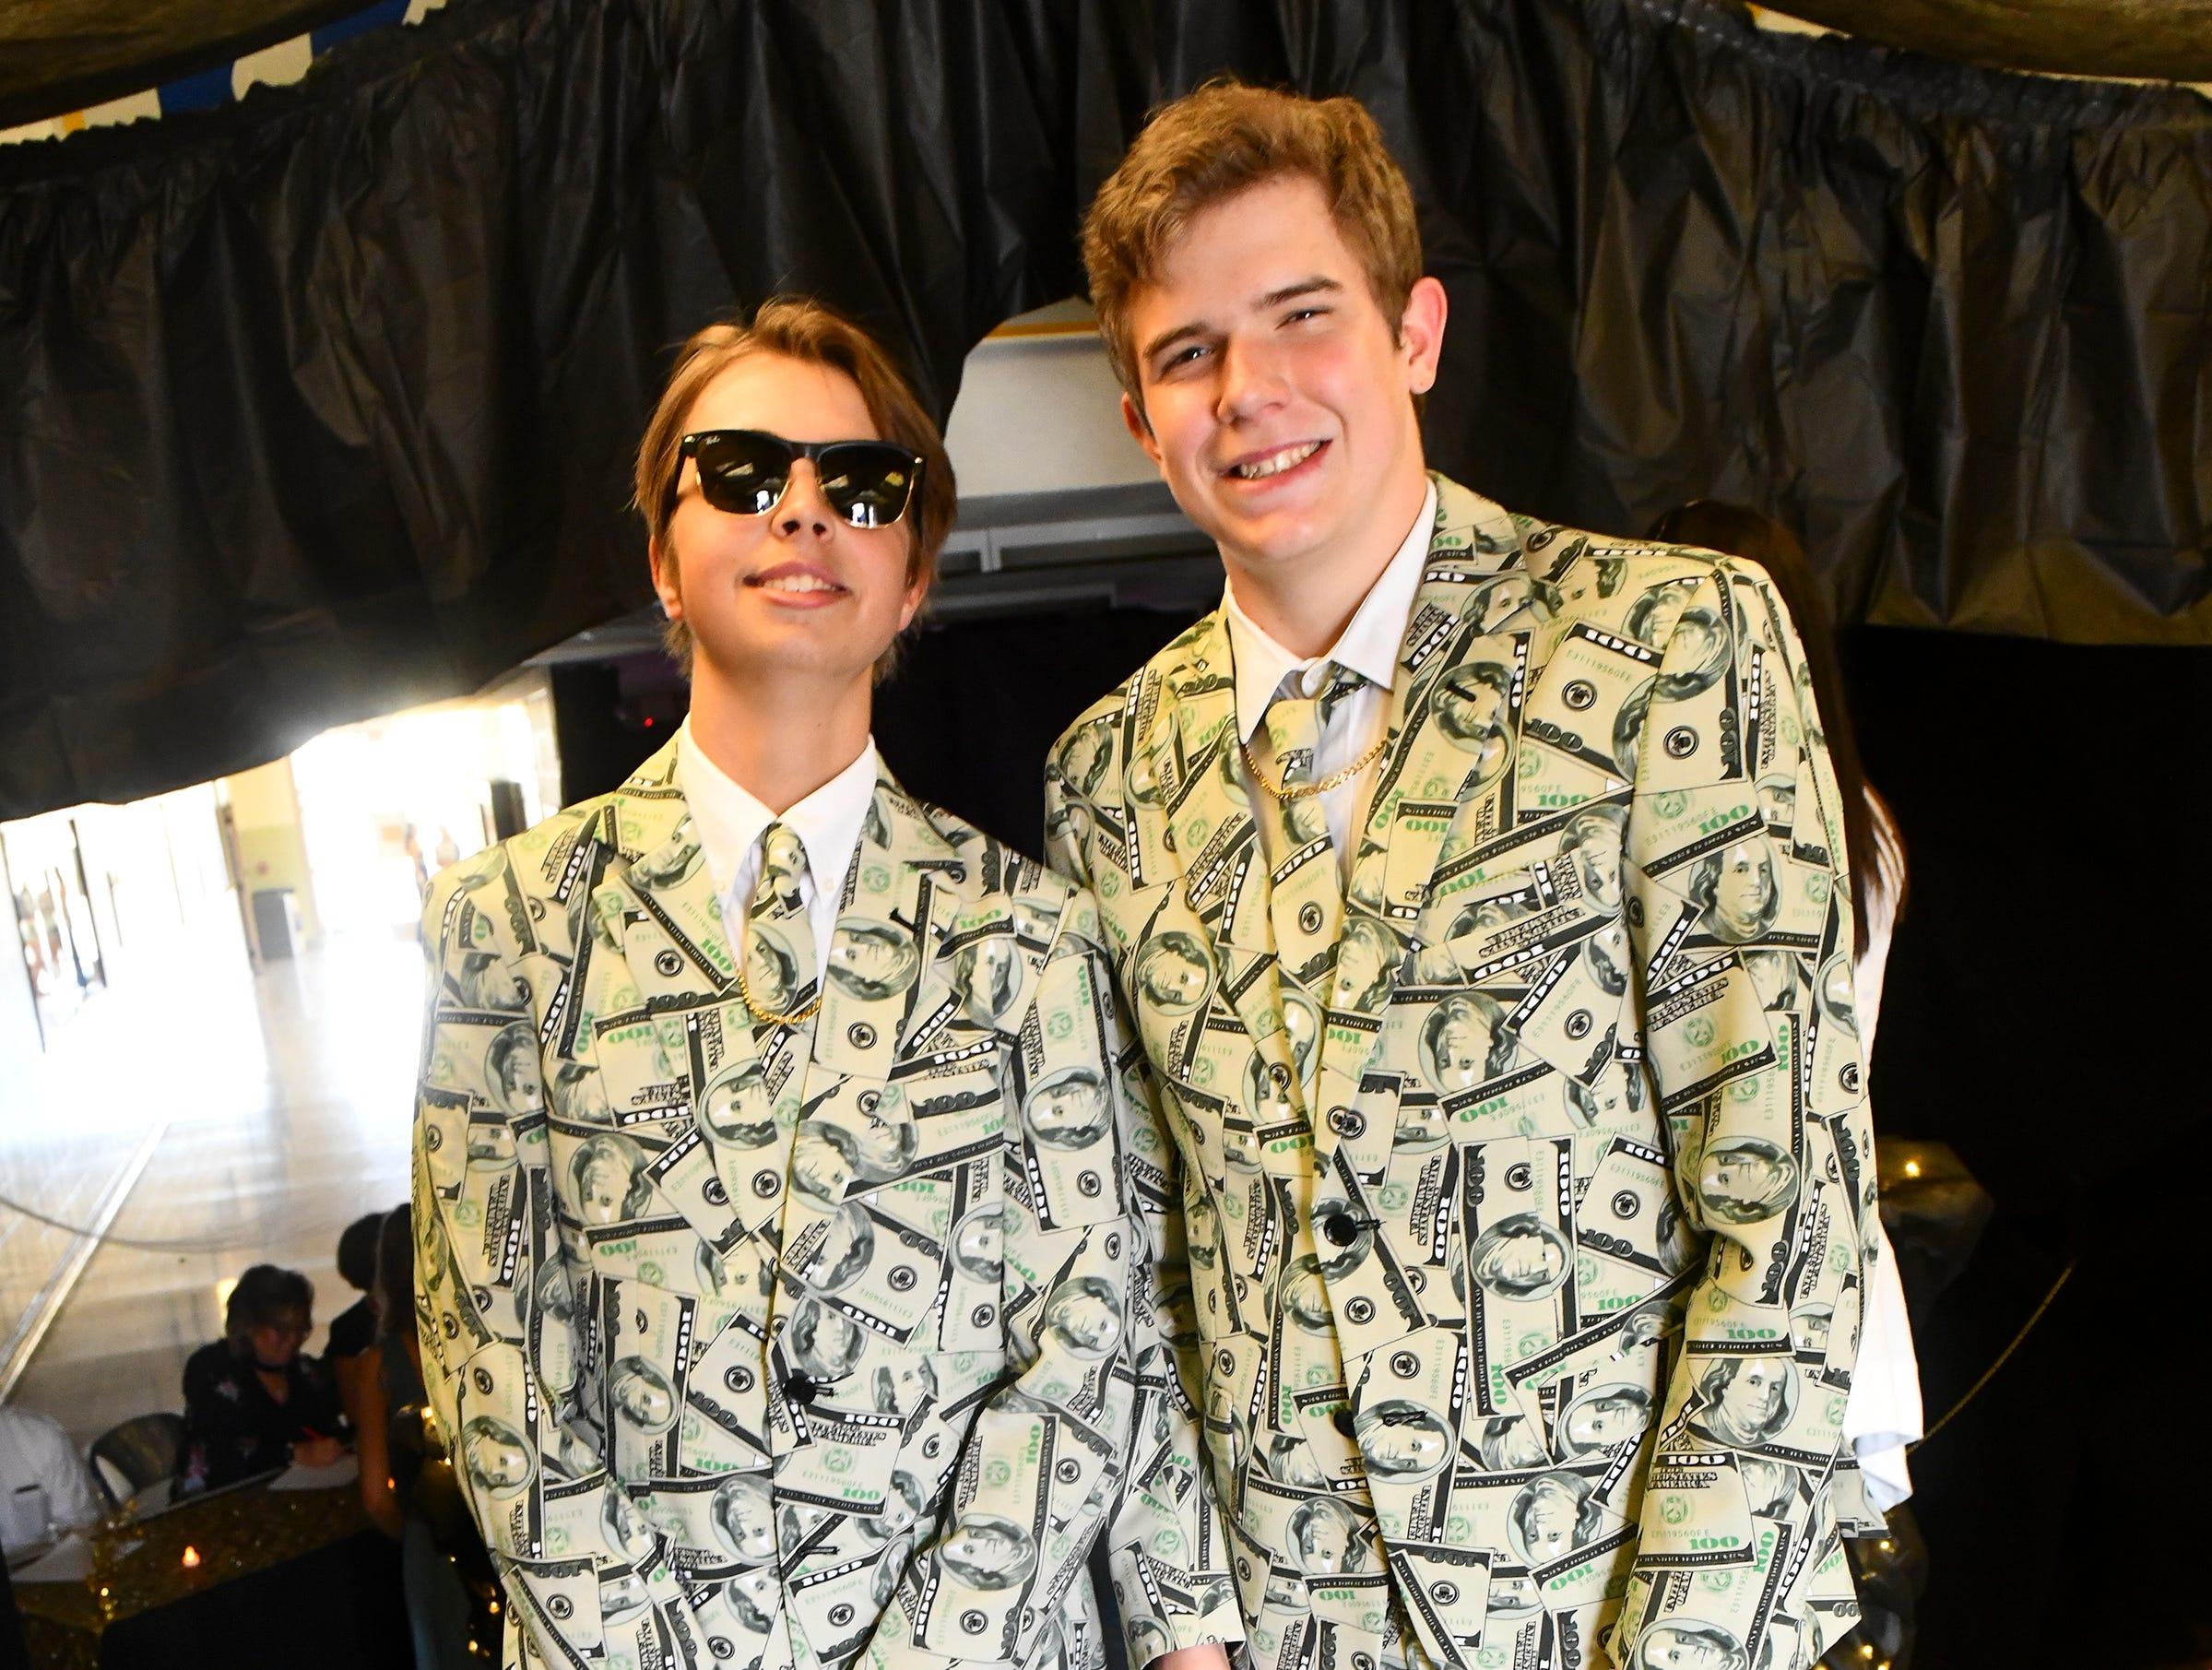 Luke Ellis and Nathan Budde wear matching money suits for prom Saturday, May 4, at Cathedral High School in St. Cloud.